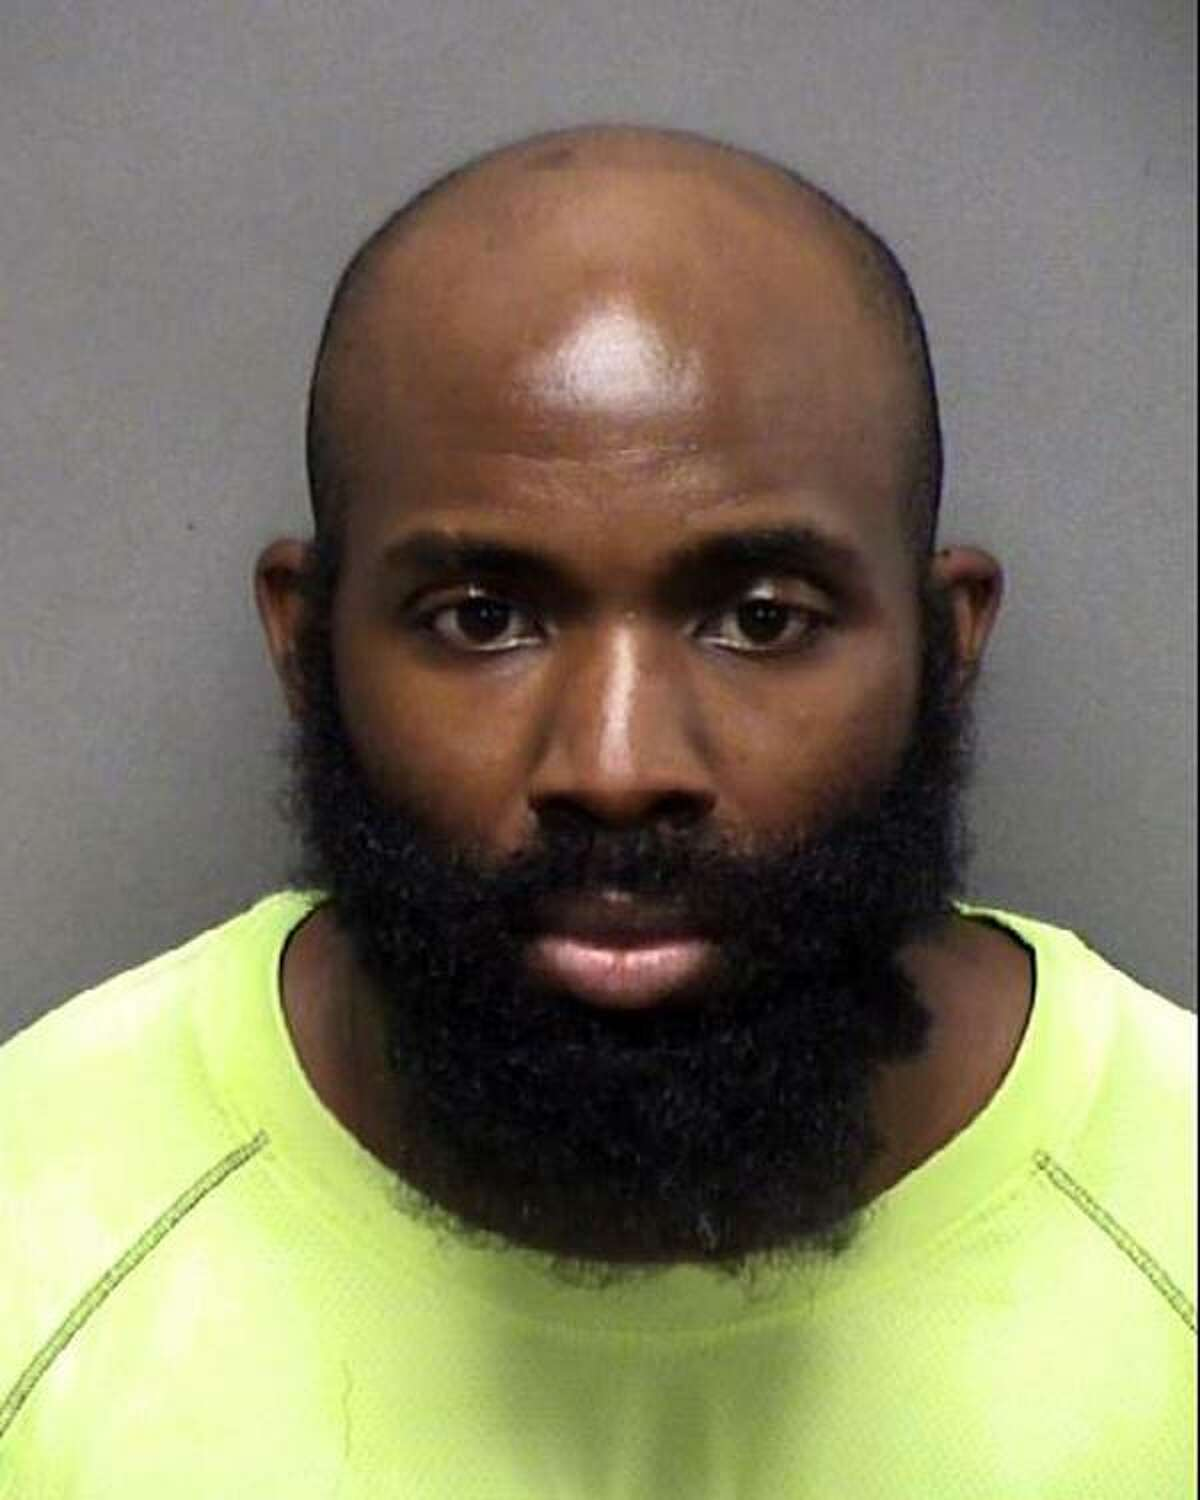 Mathias Ometu, 33, was arrested on Tuesday, Aug. 25, 2020, on two counts of assaulting a police officer. The charges were dismissed on Tuesday, Sept. 1, 2020.